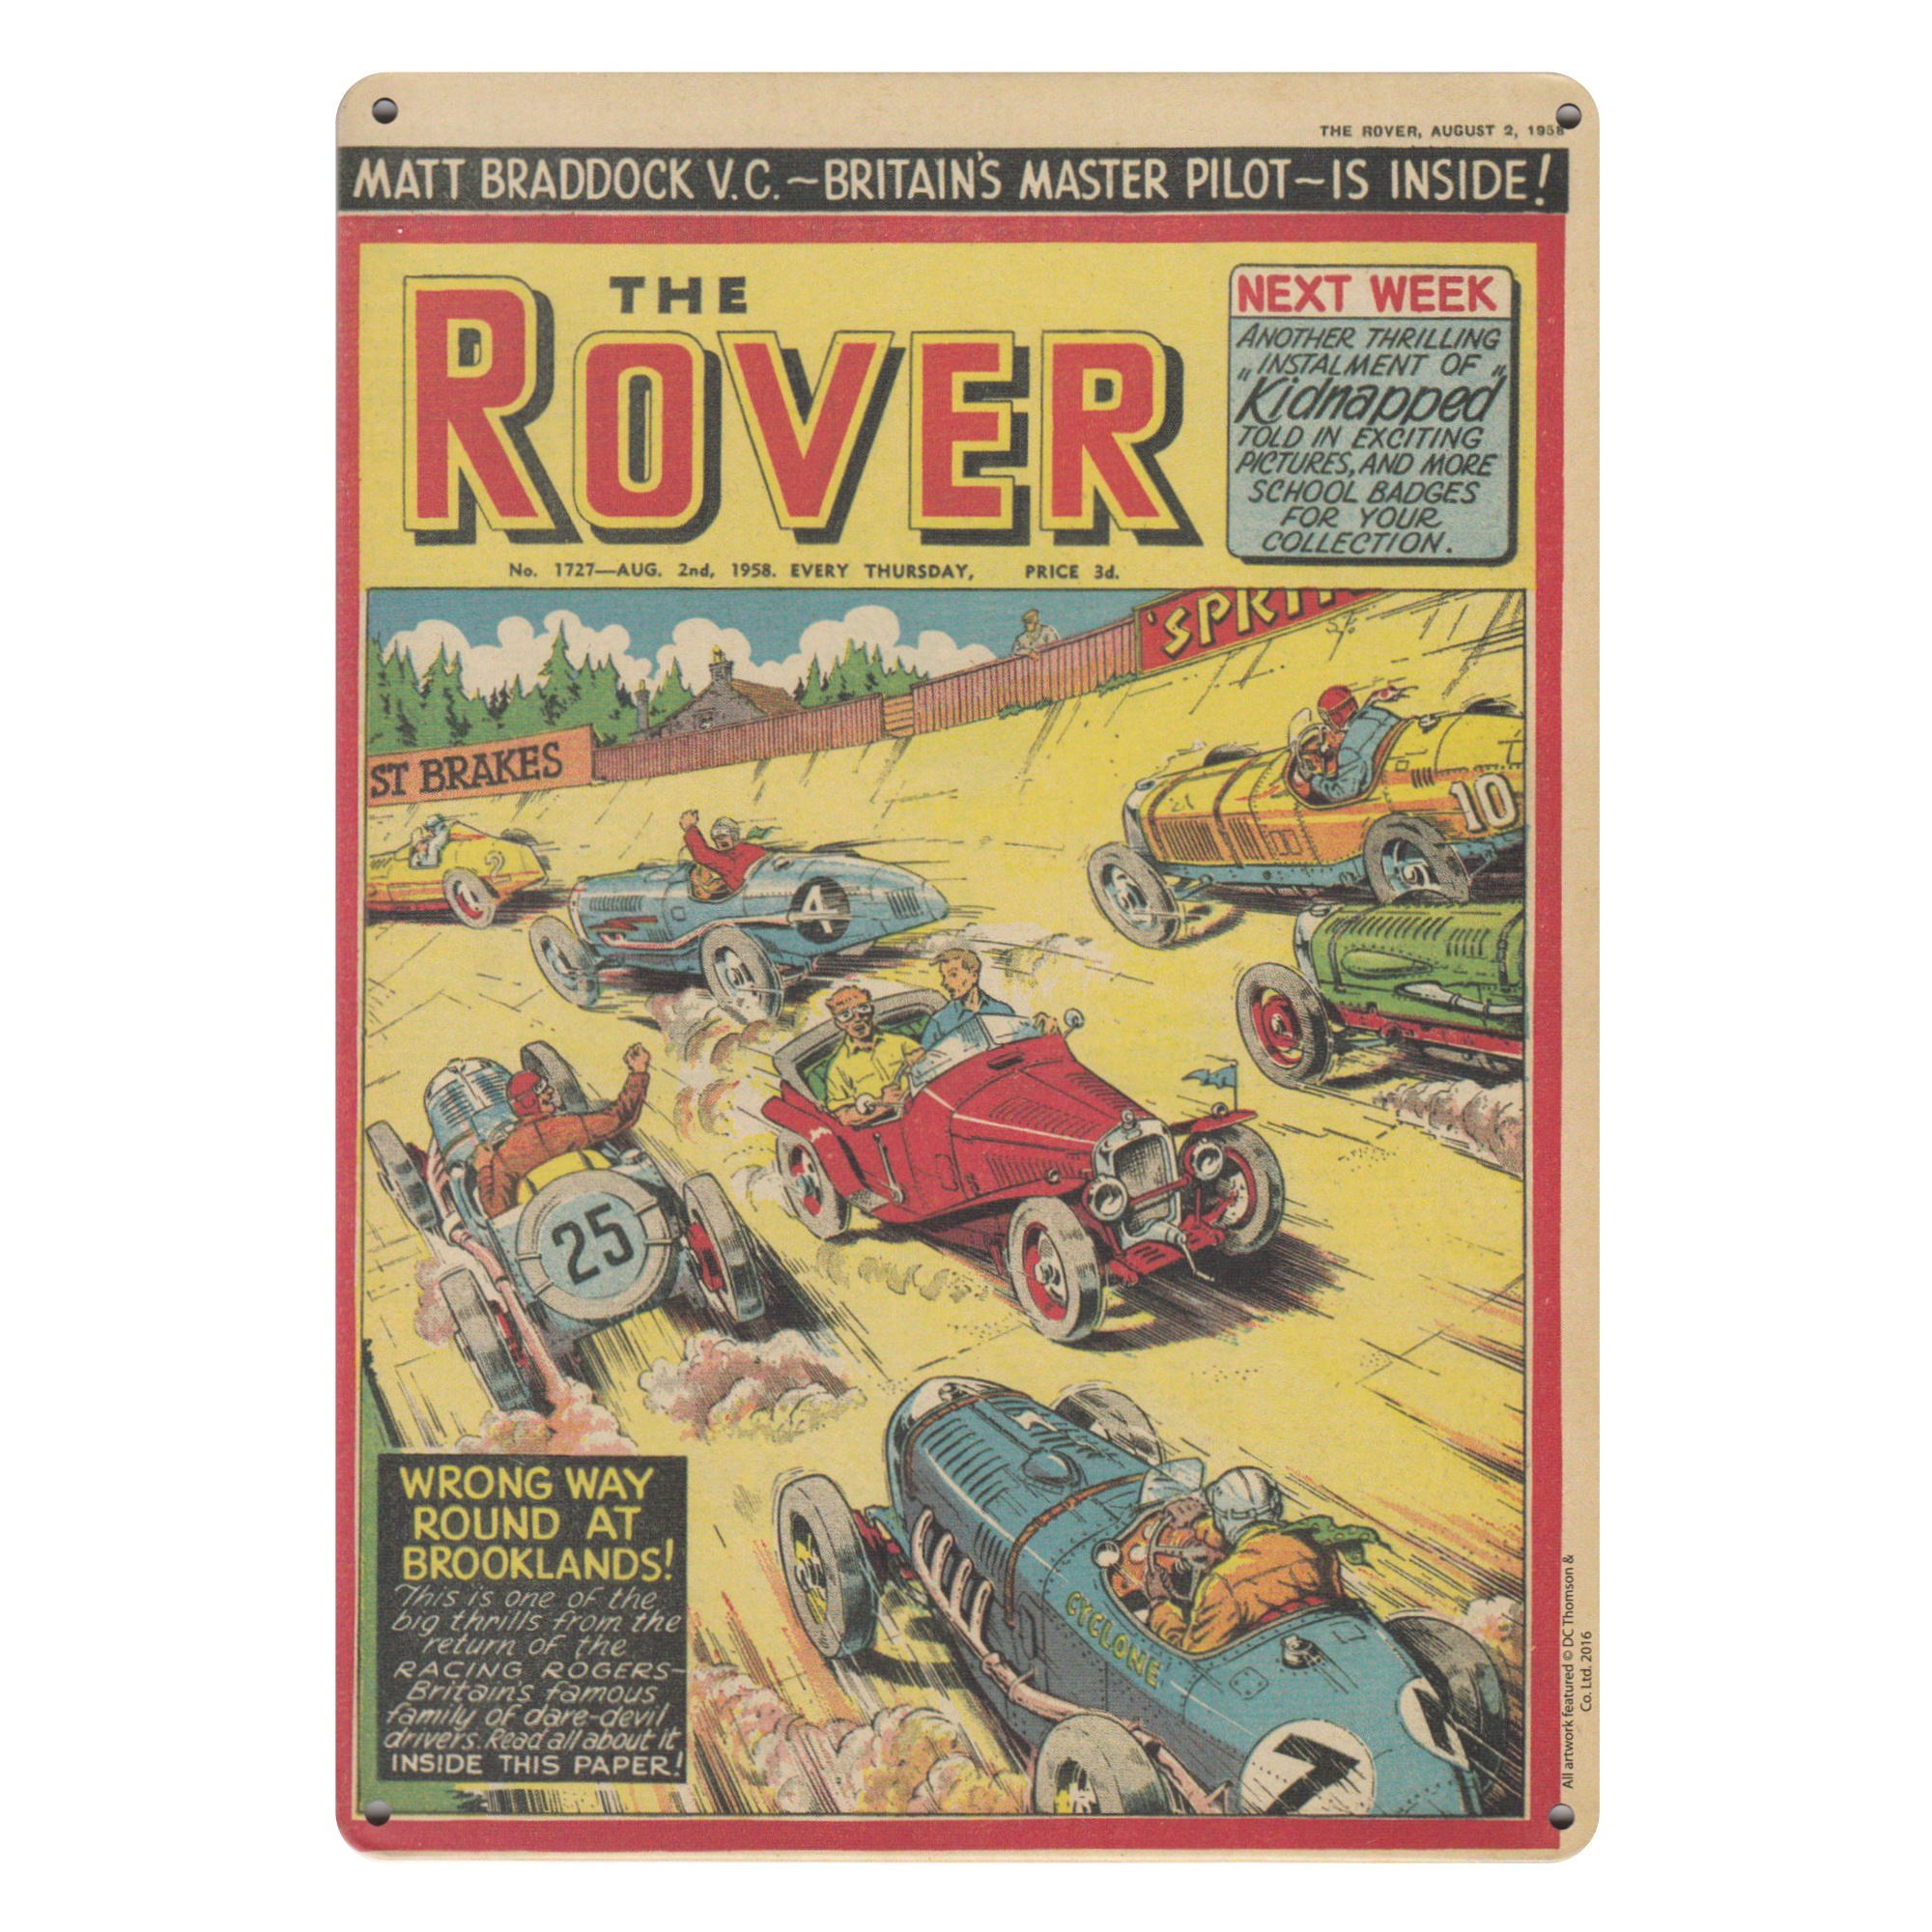 THE ROVER COMIC A5 STEEL SIGN TIN PICTURE WALL ART RETRO PLAQUE ...